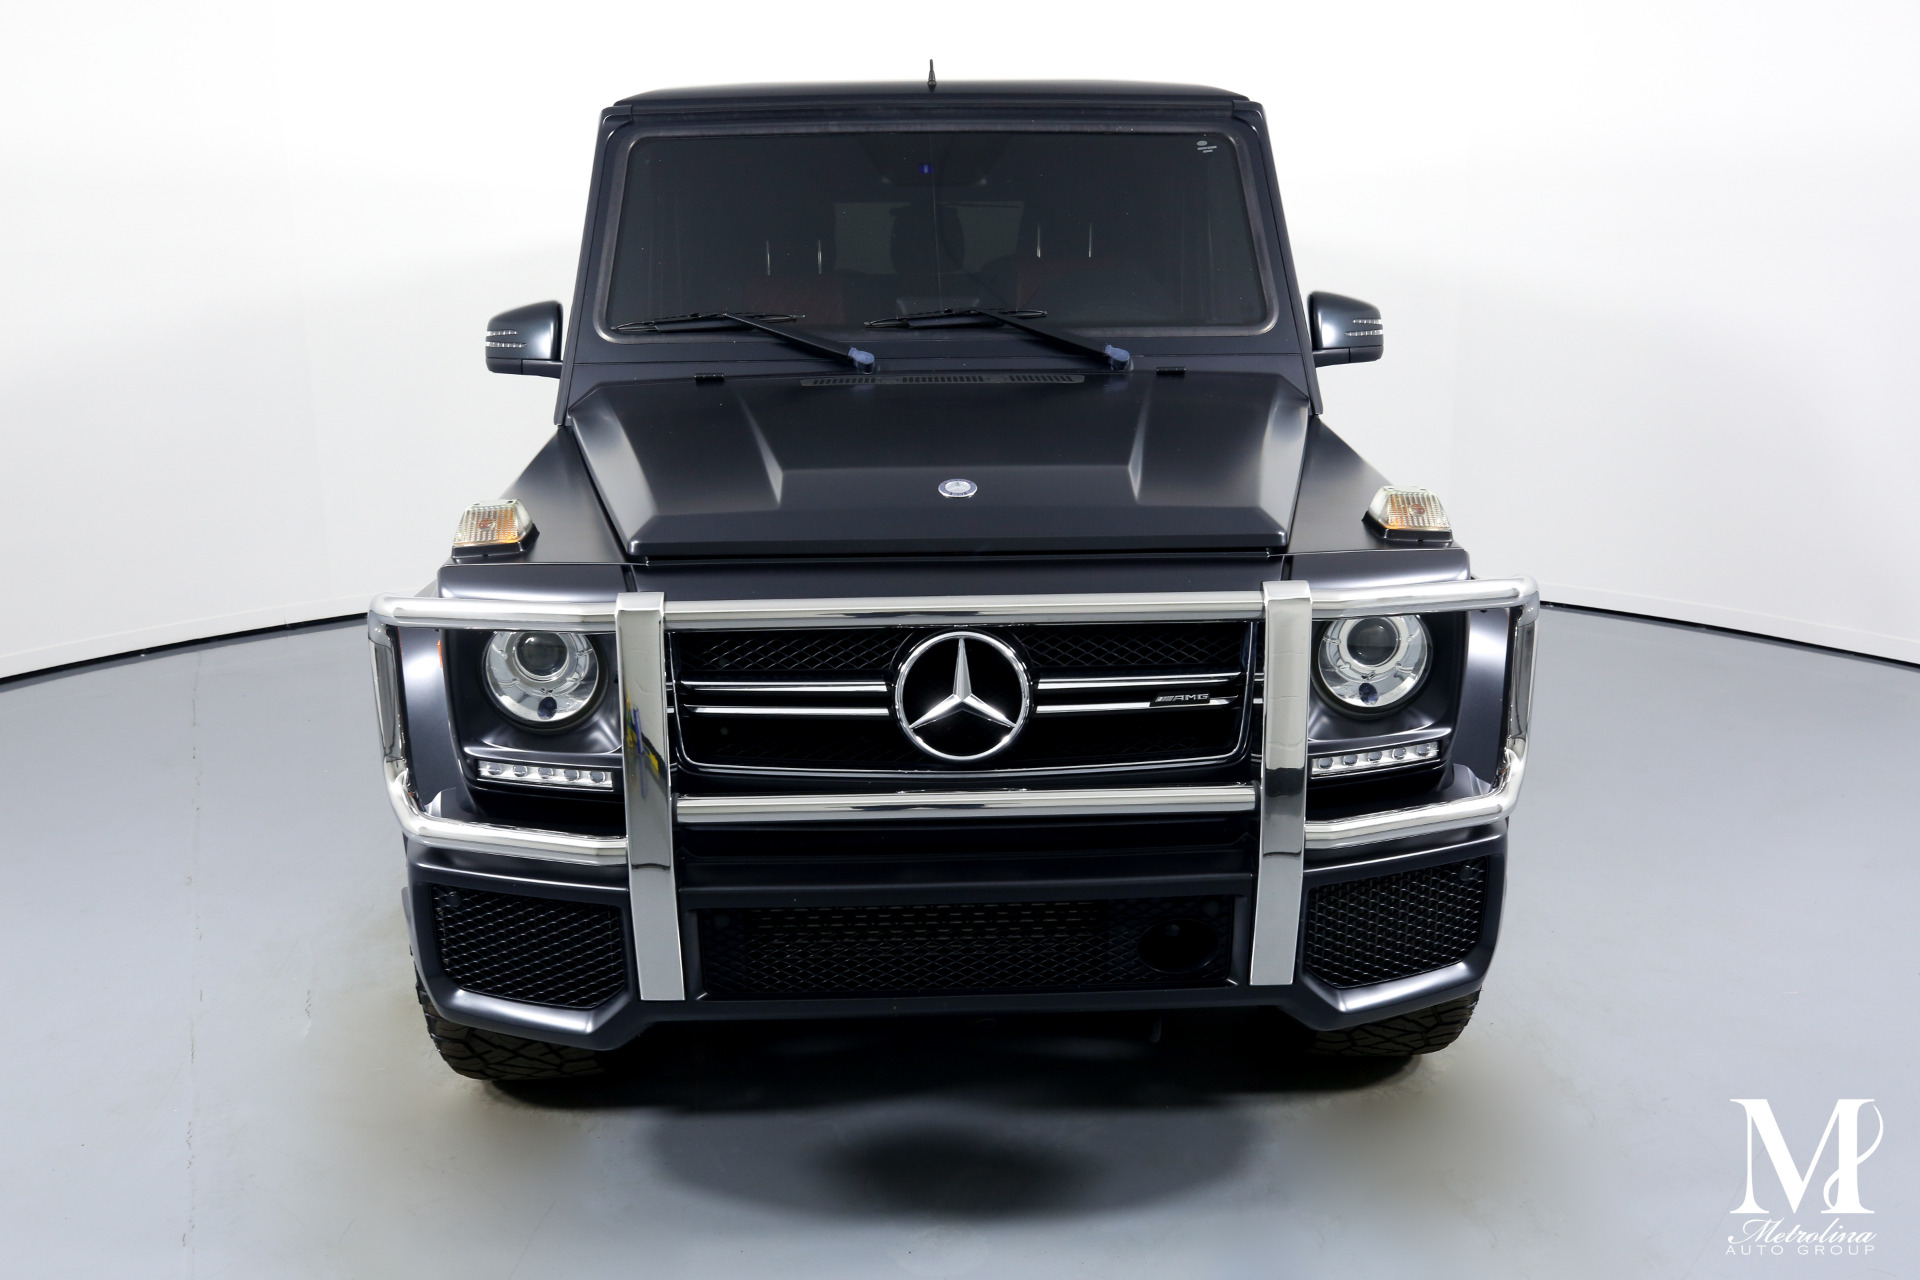 Used 2016 Mercedes-Benz G-Class AMG G 63 for sale Sold at Metrolina Auto Group in Charlotte NC 28217 - 3